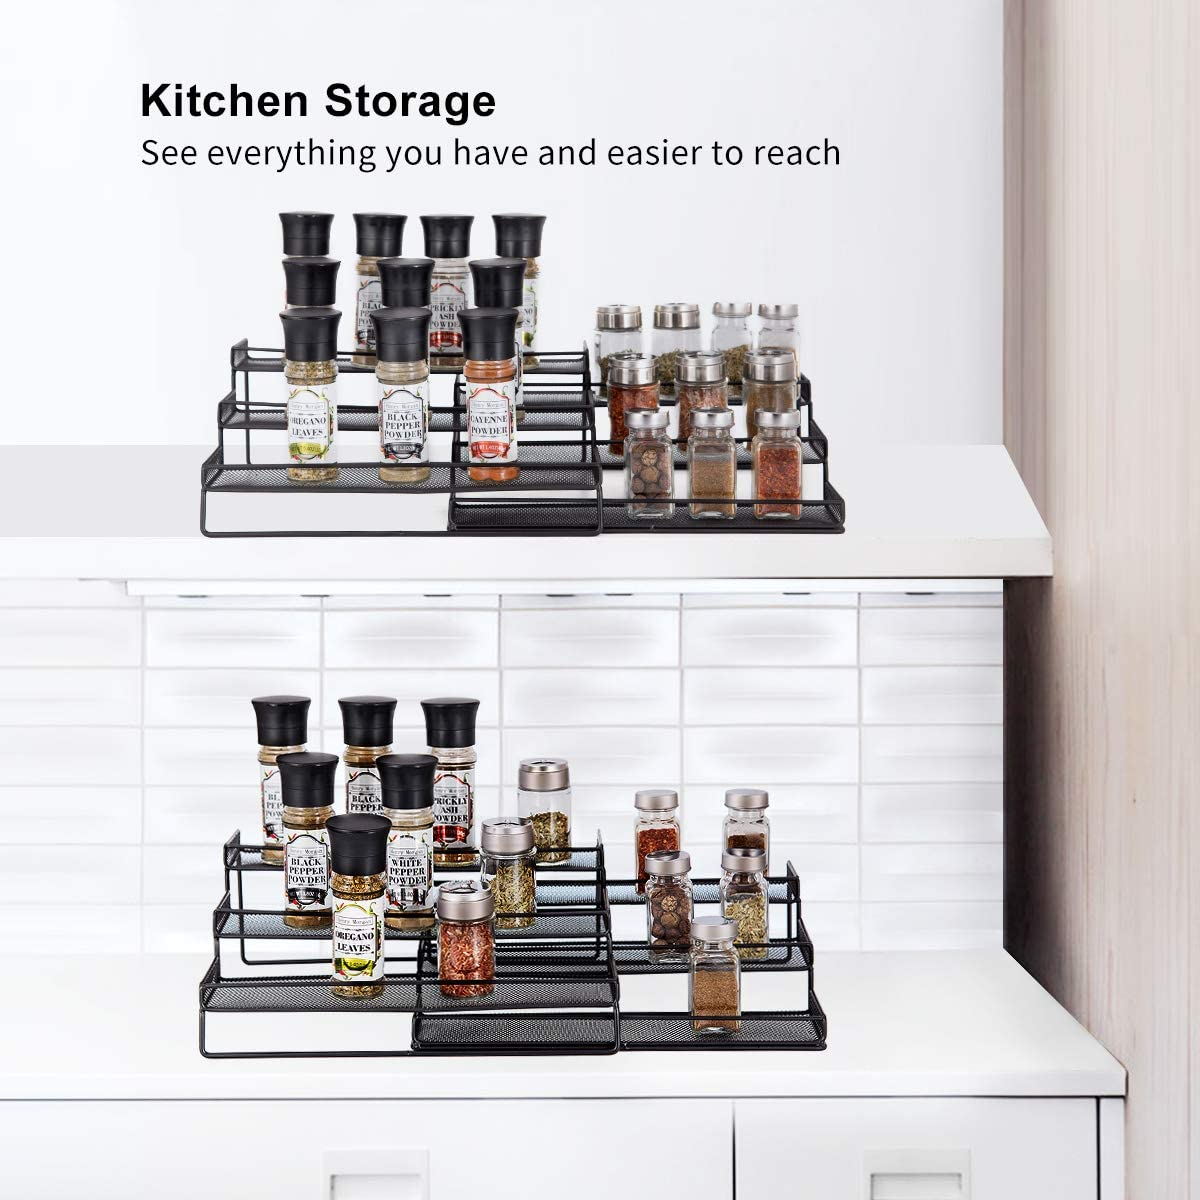 KUNGEAR Expandable 3-Tier Spice Rack Organizer for Cabinet, Black Metal MeshStep Shelf with Non-Skid Design Protecting Railing, Ideal for Pantry/Countertop/Bathroom, Black: Home Improvement